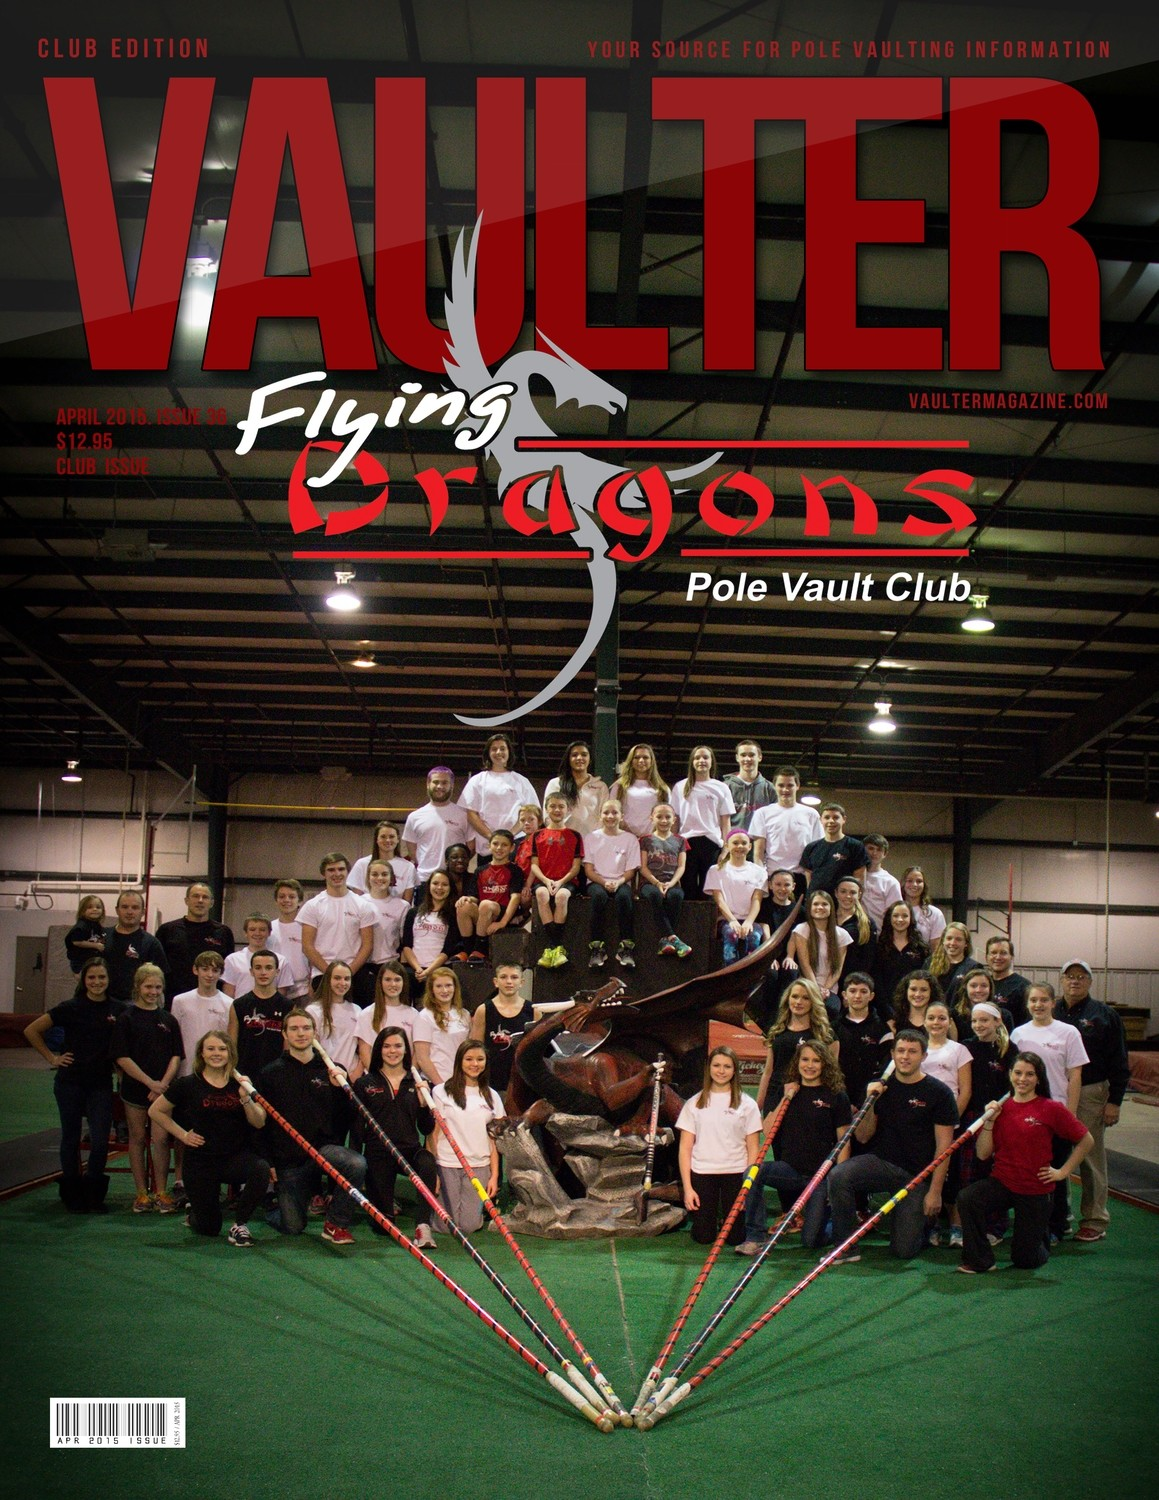 Buy a Flying Dragon Magazine - Get Poster for $20 - That's $5 Off